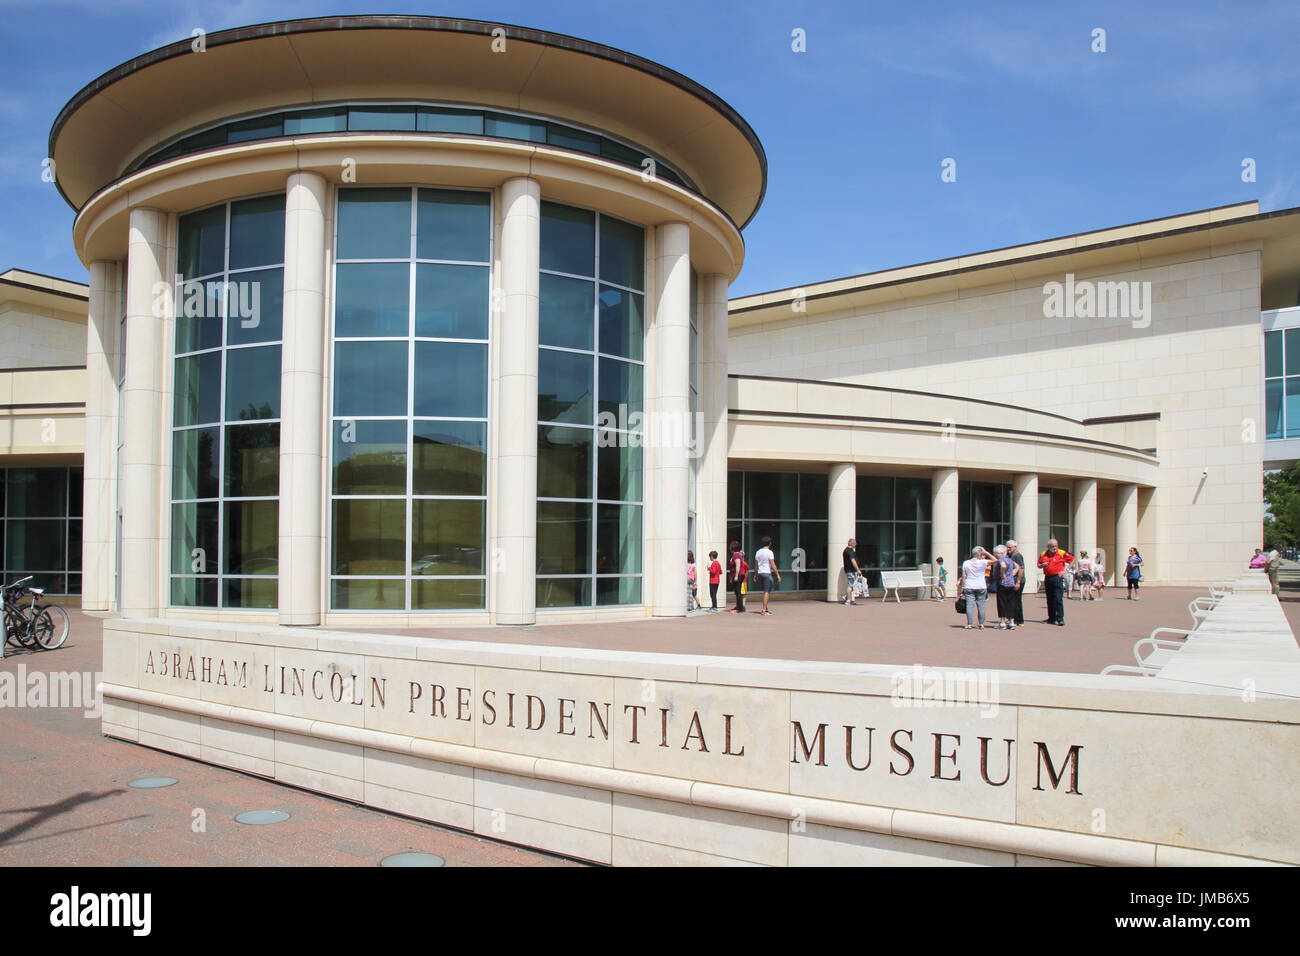 abraham lincoln presidential museum springfield illinois - Stock Image